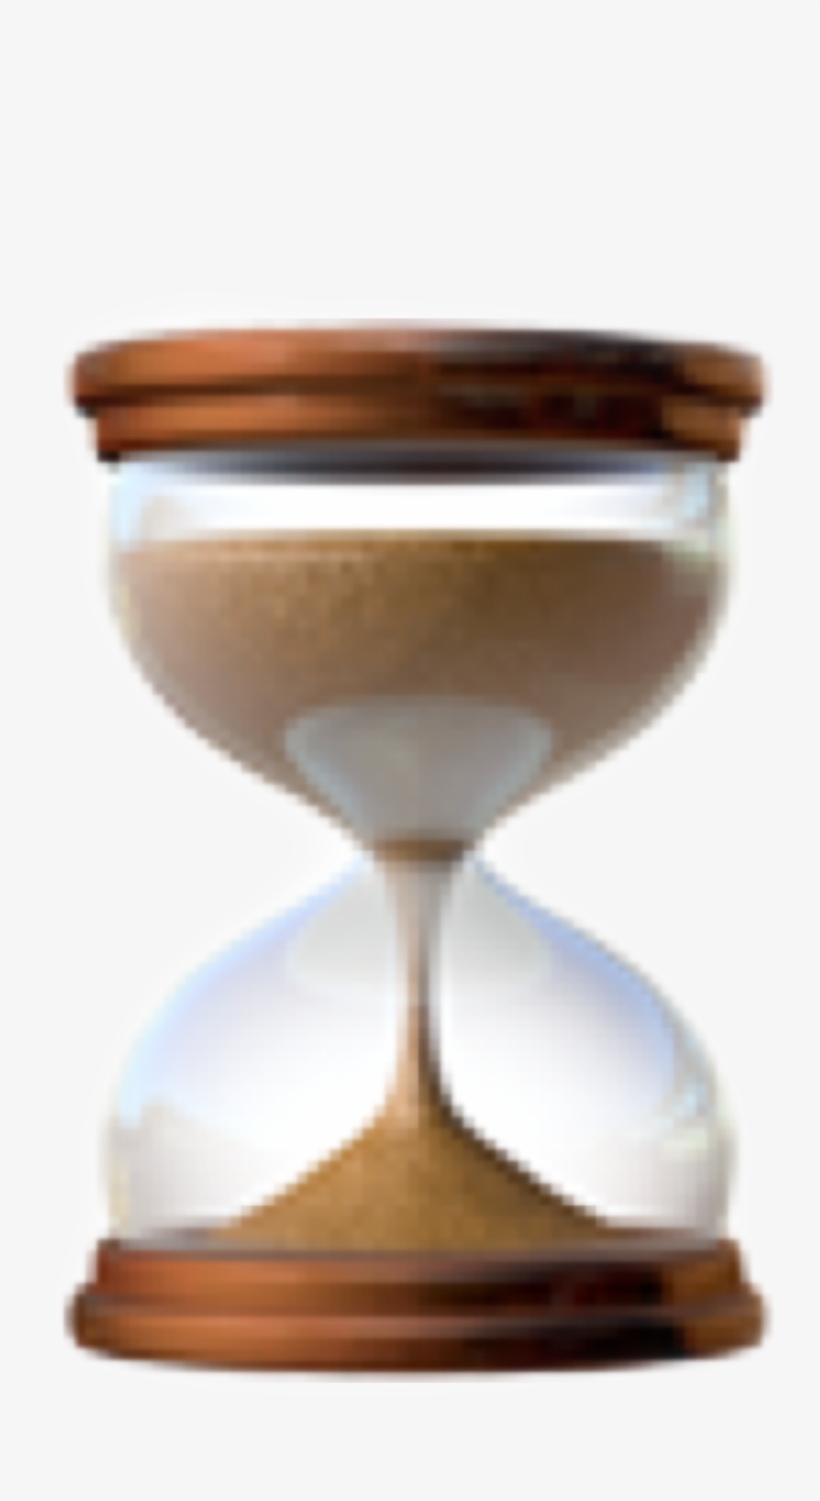 time #emoji #timeismoney #sanduhr #clock #hour #uhr - Sand